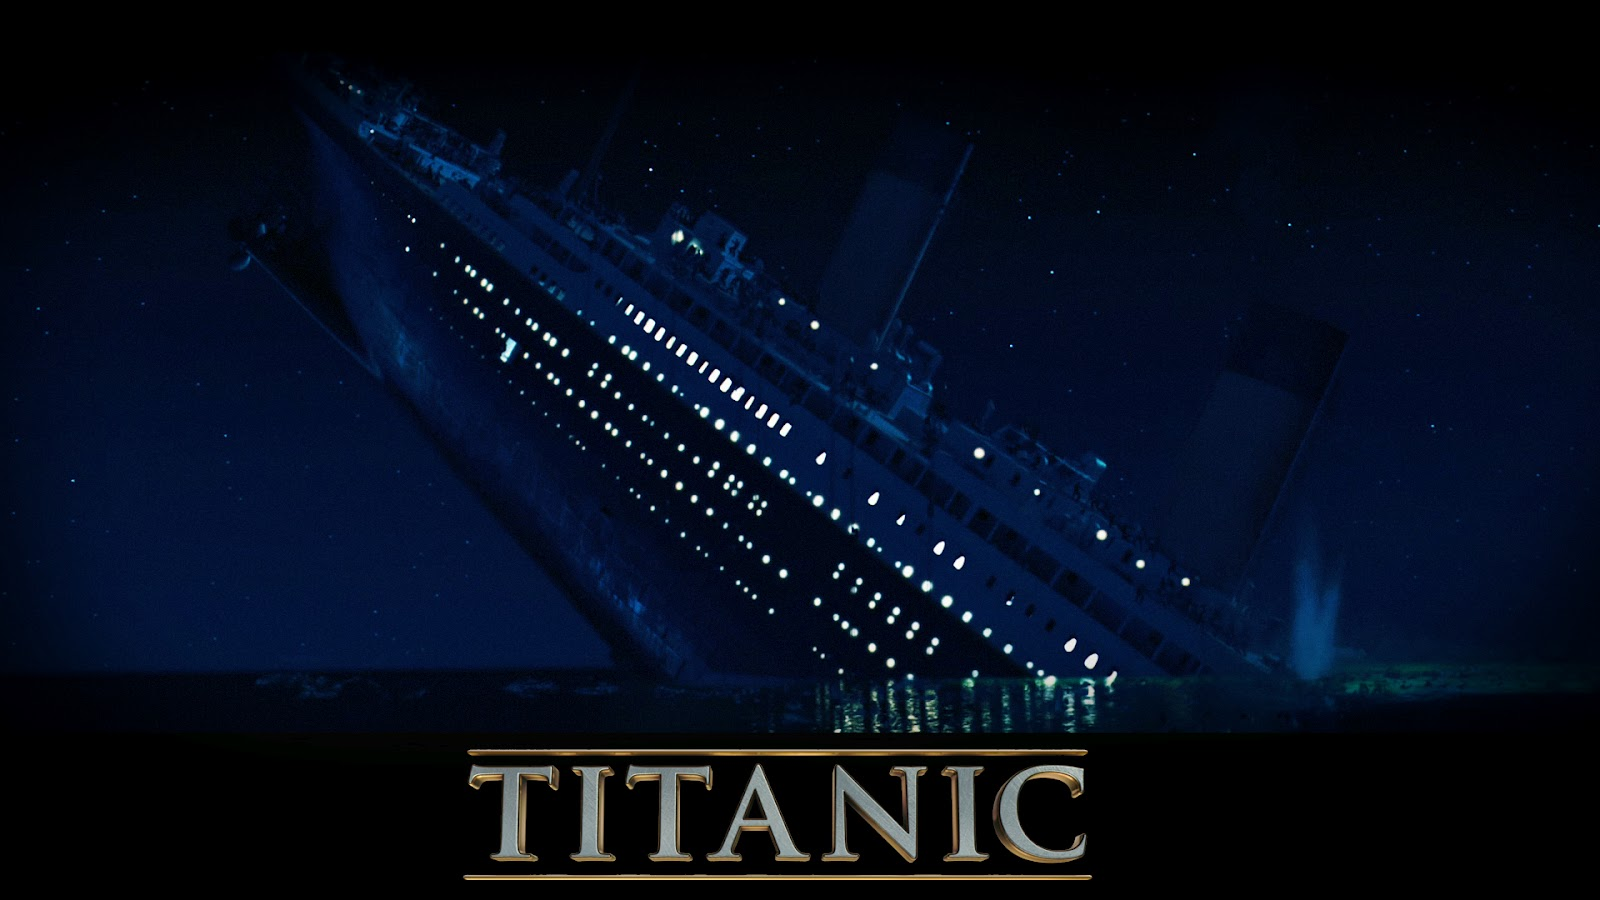 Titanic Love Wallpaper Hd : free wallpicz: Titanic Hd Desktop Wallpaper